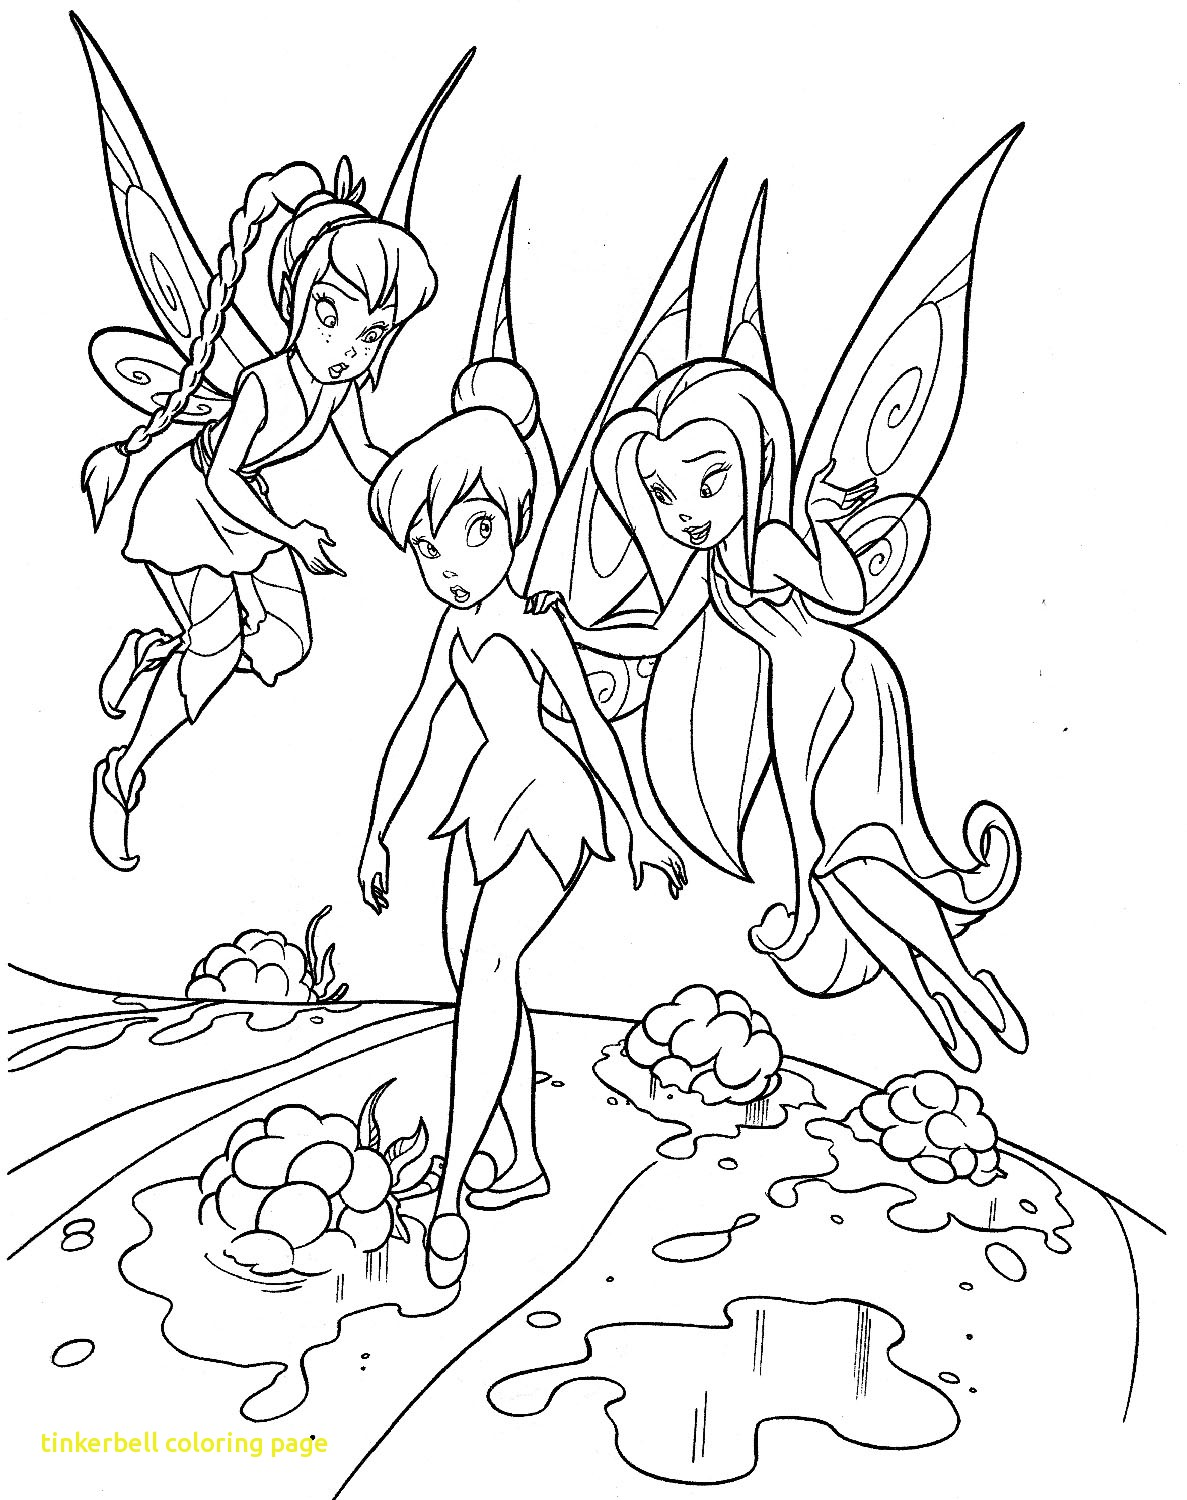 1187x1500 Tinkerbell Coloring Page With Tinkerbell Coloring Pages